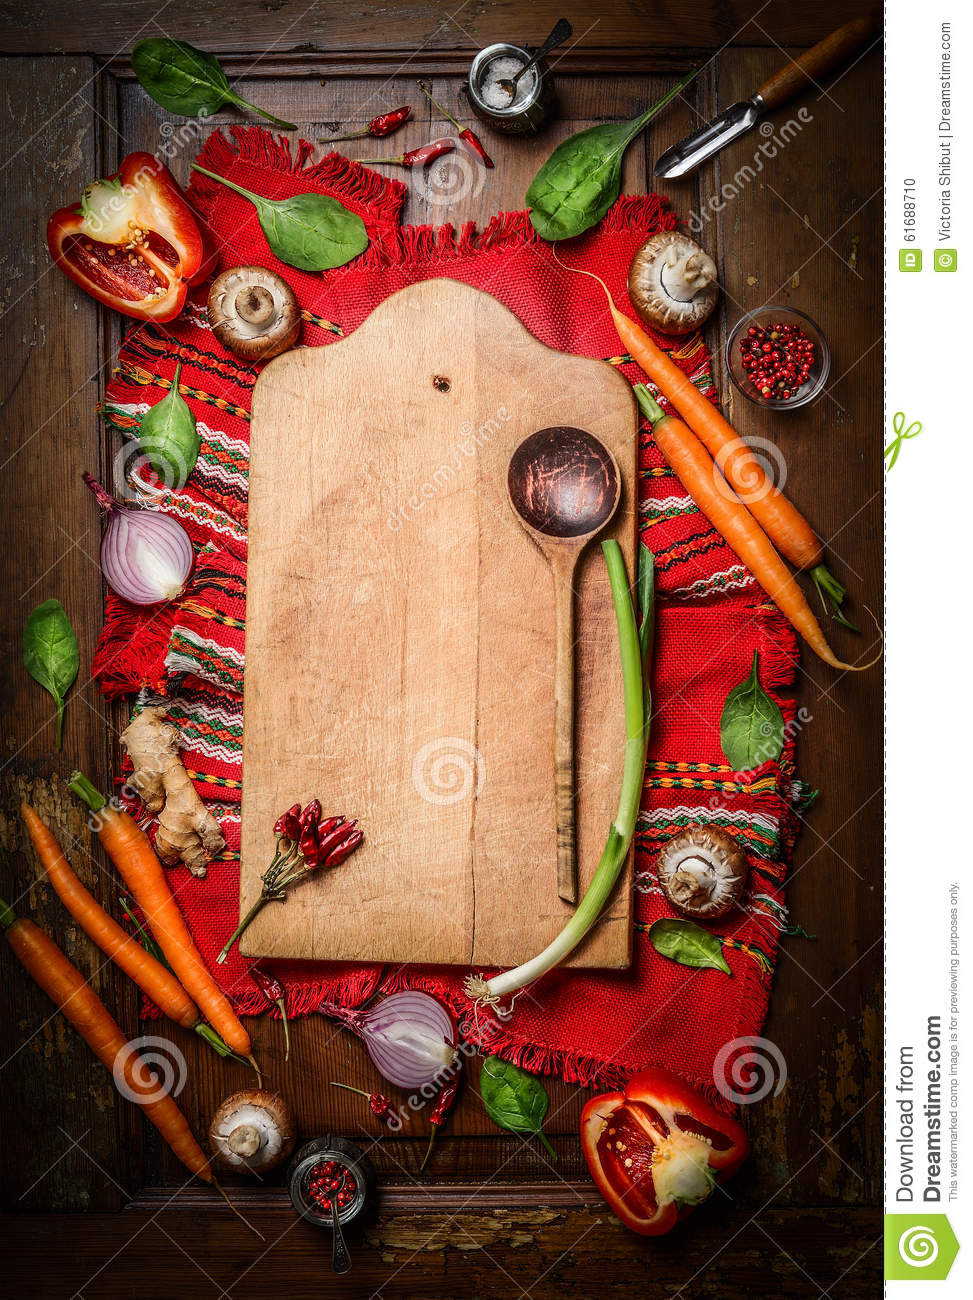 Fresh organic vegetables around old cutting board with wooden spoon on rustic napkin and wooden background. Top view, frame.